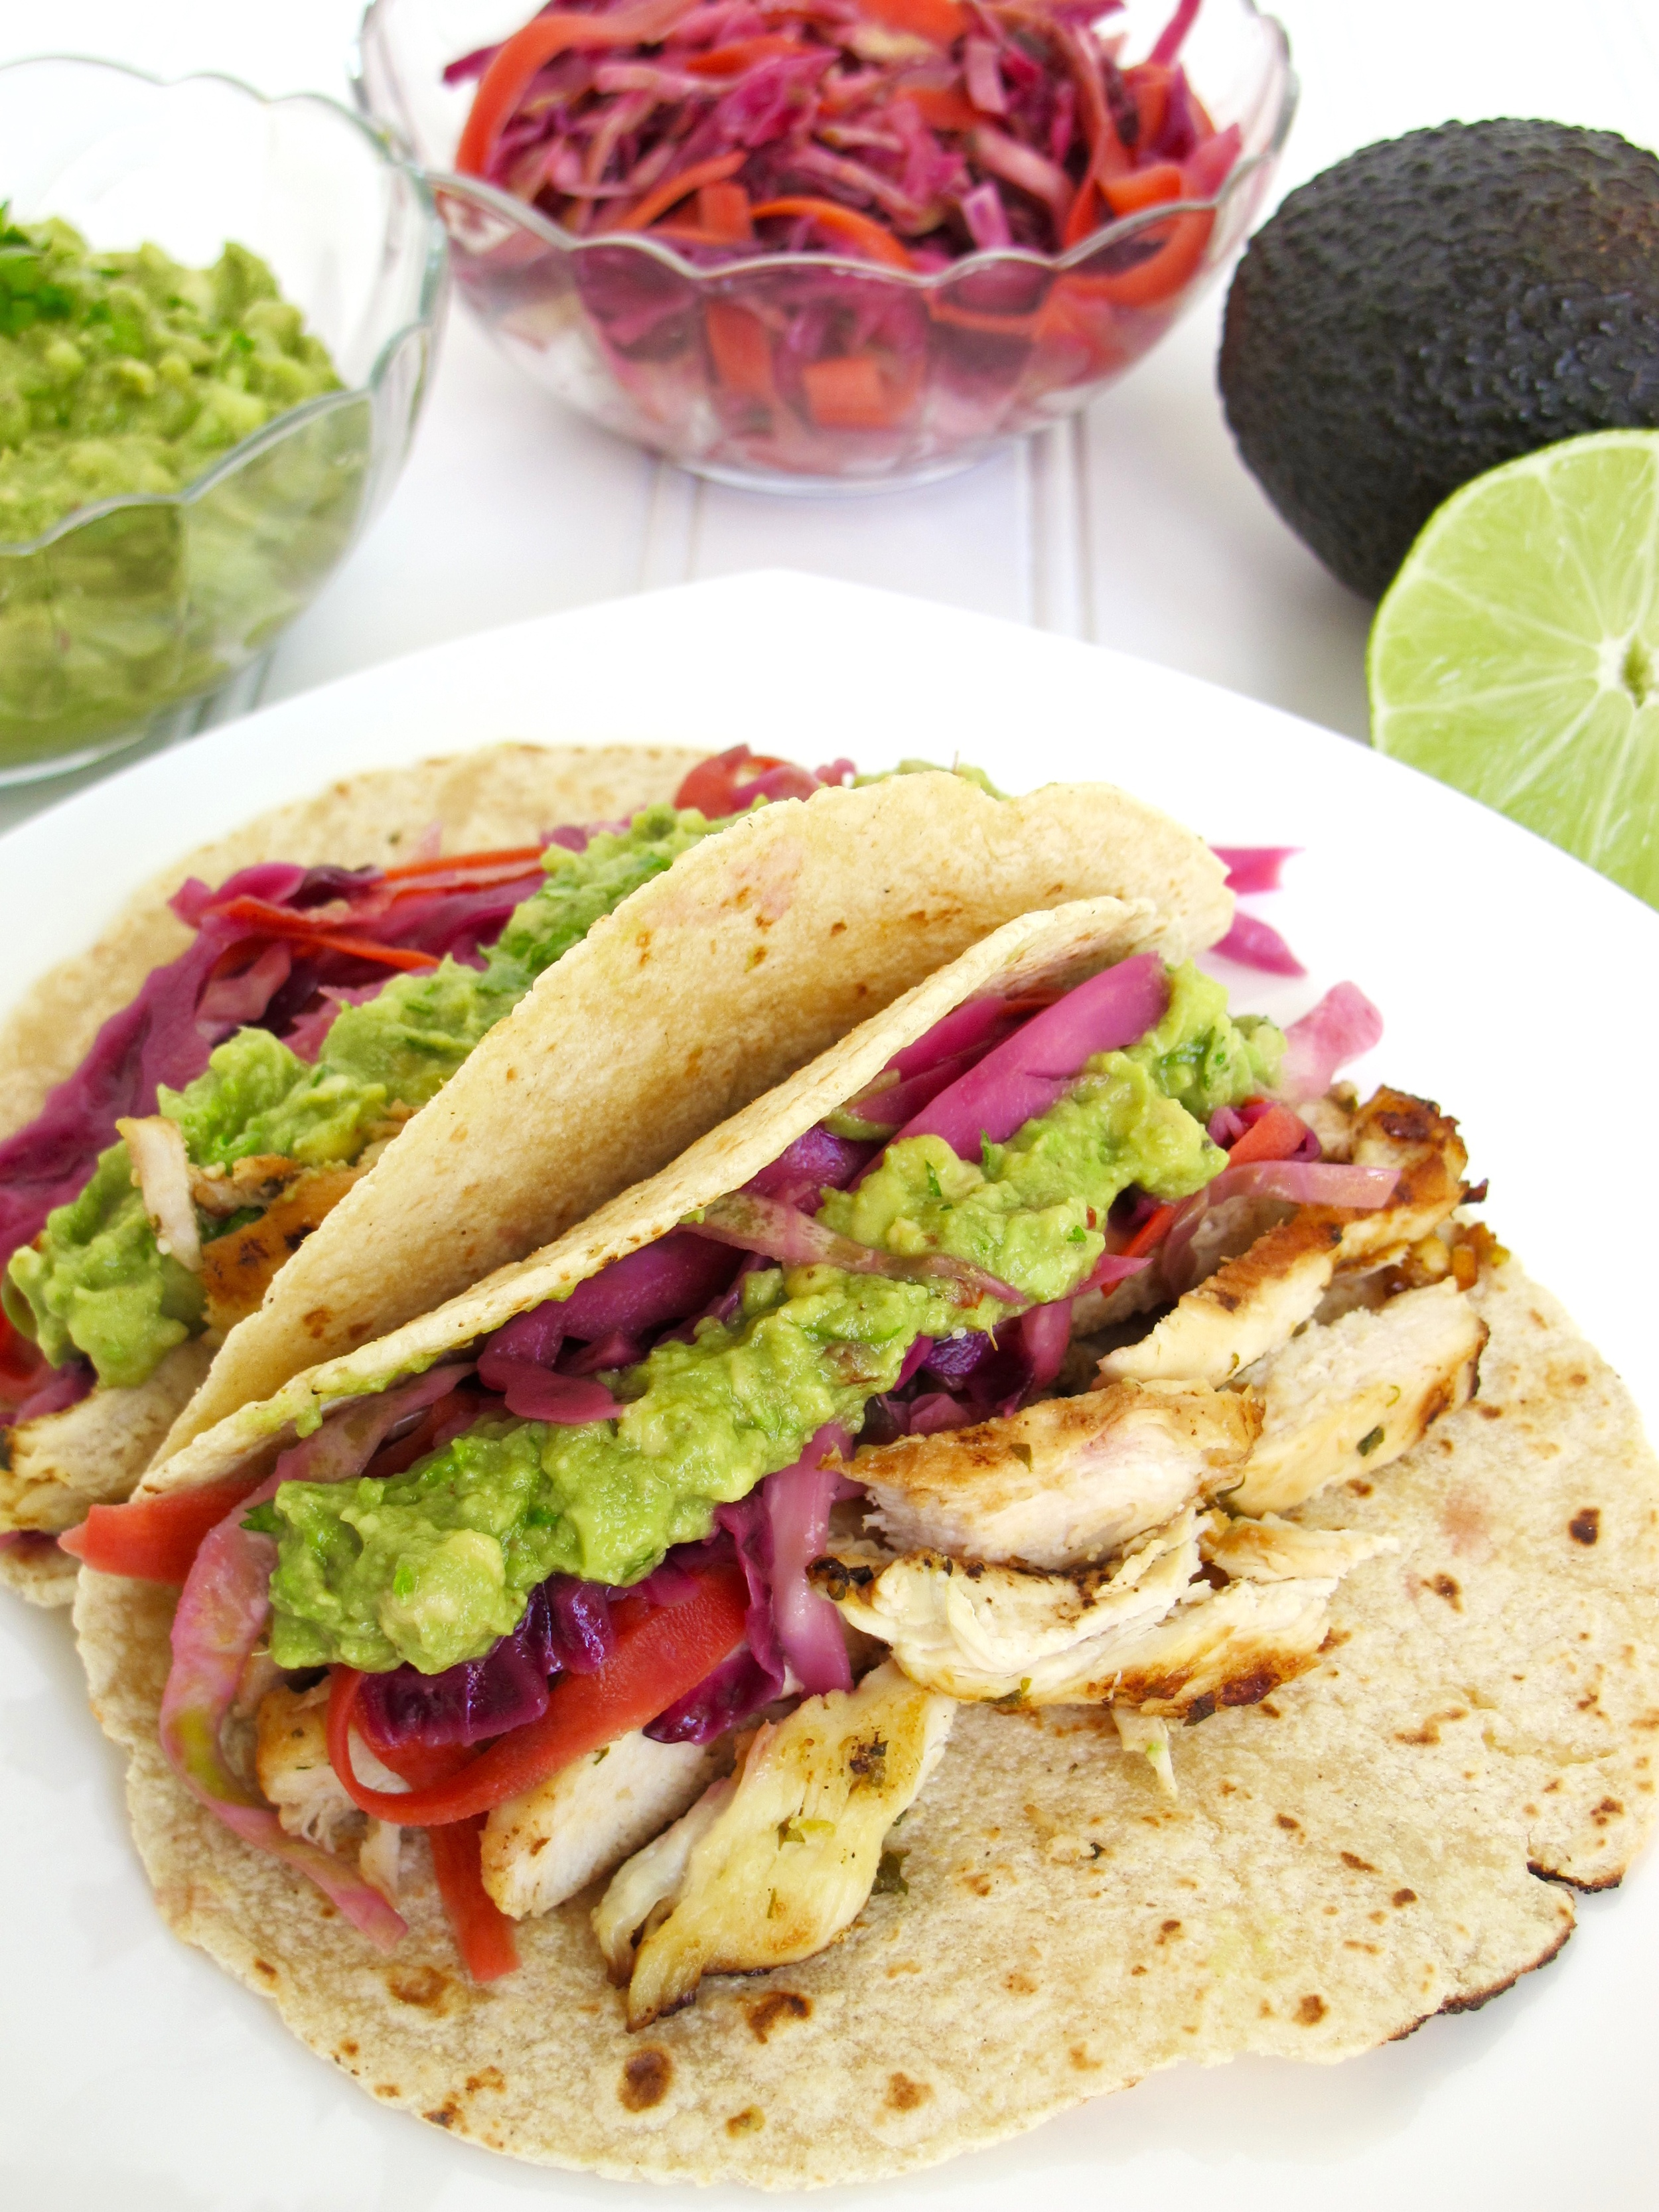 Chicken Tacos with Spicy Cabbage Slaw and Guacamole